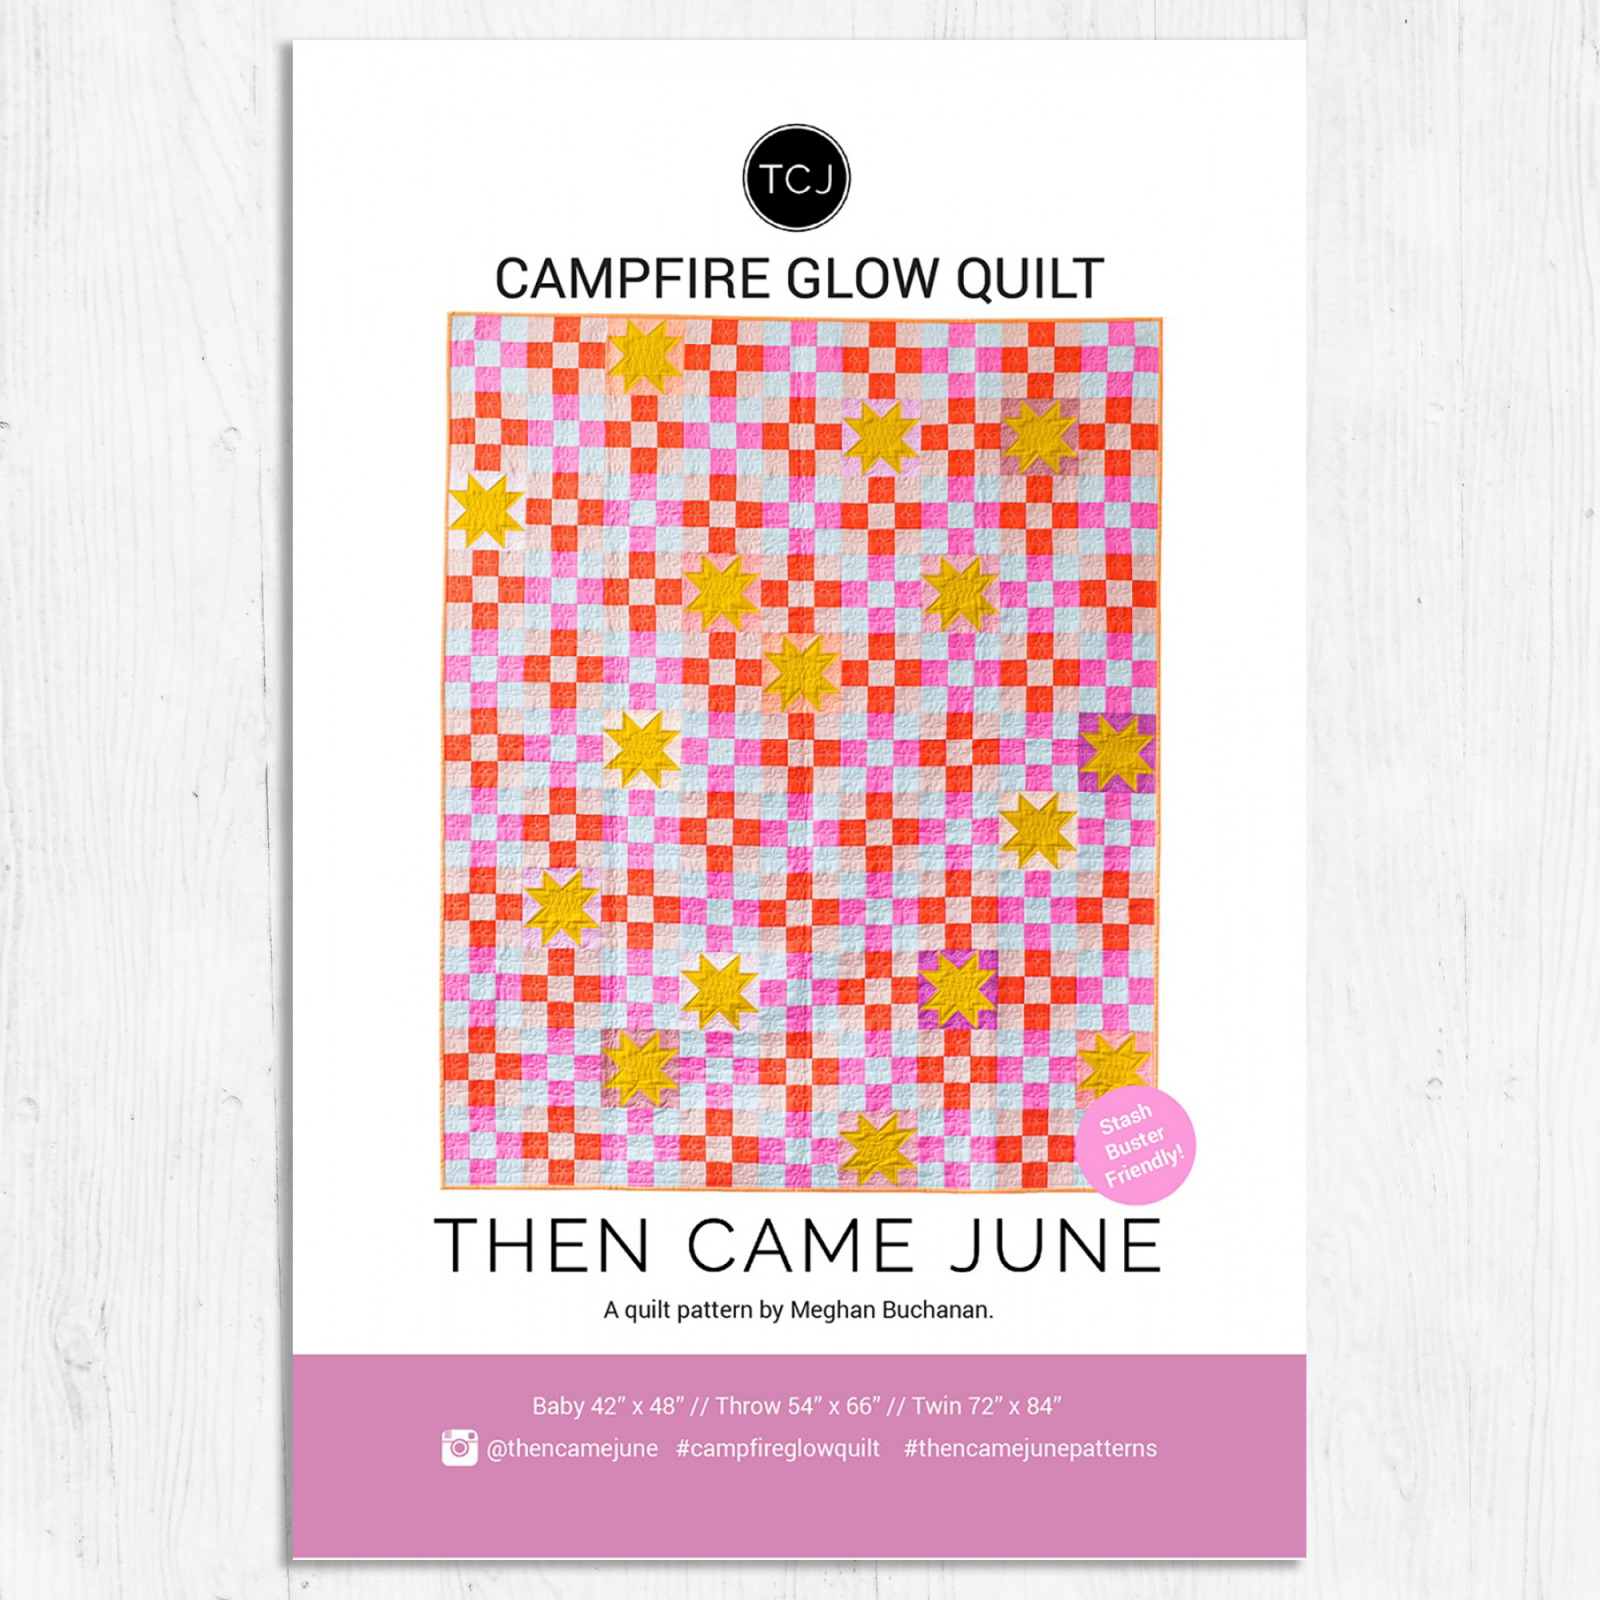 Then Came June - Campfire Glow Quilt